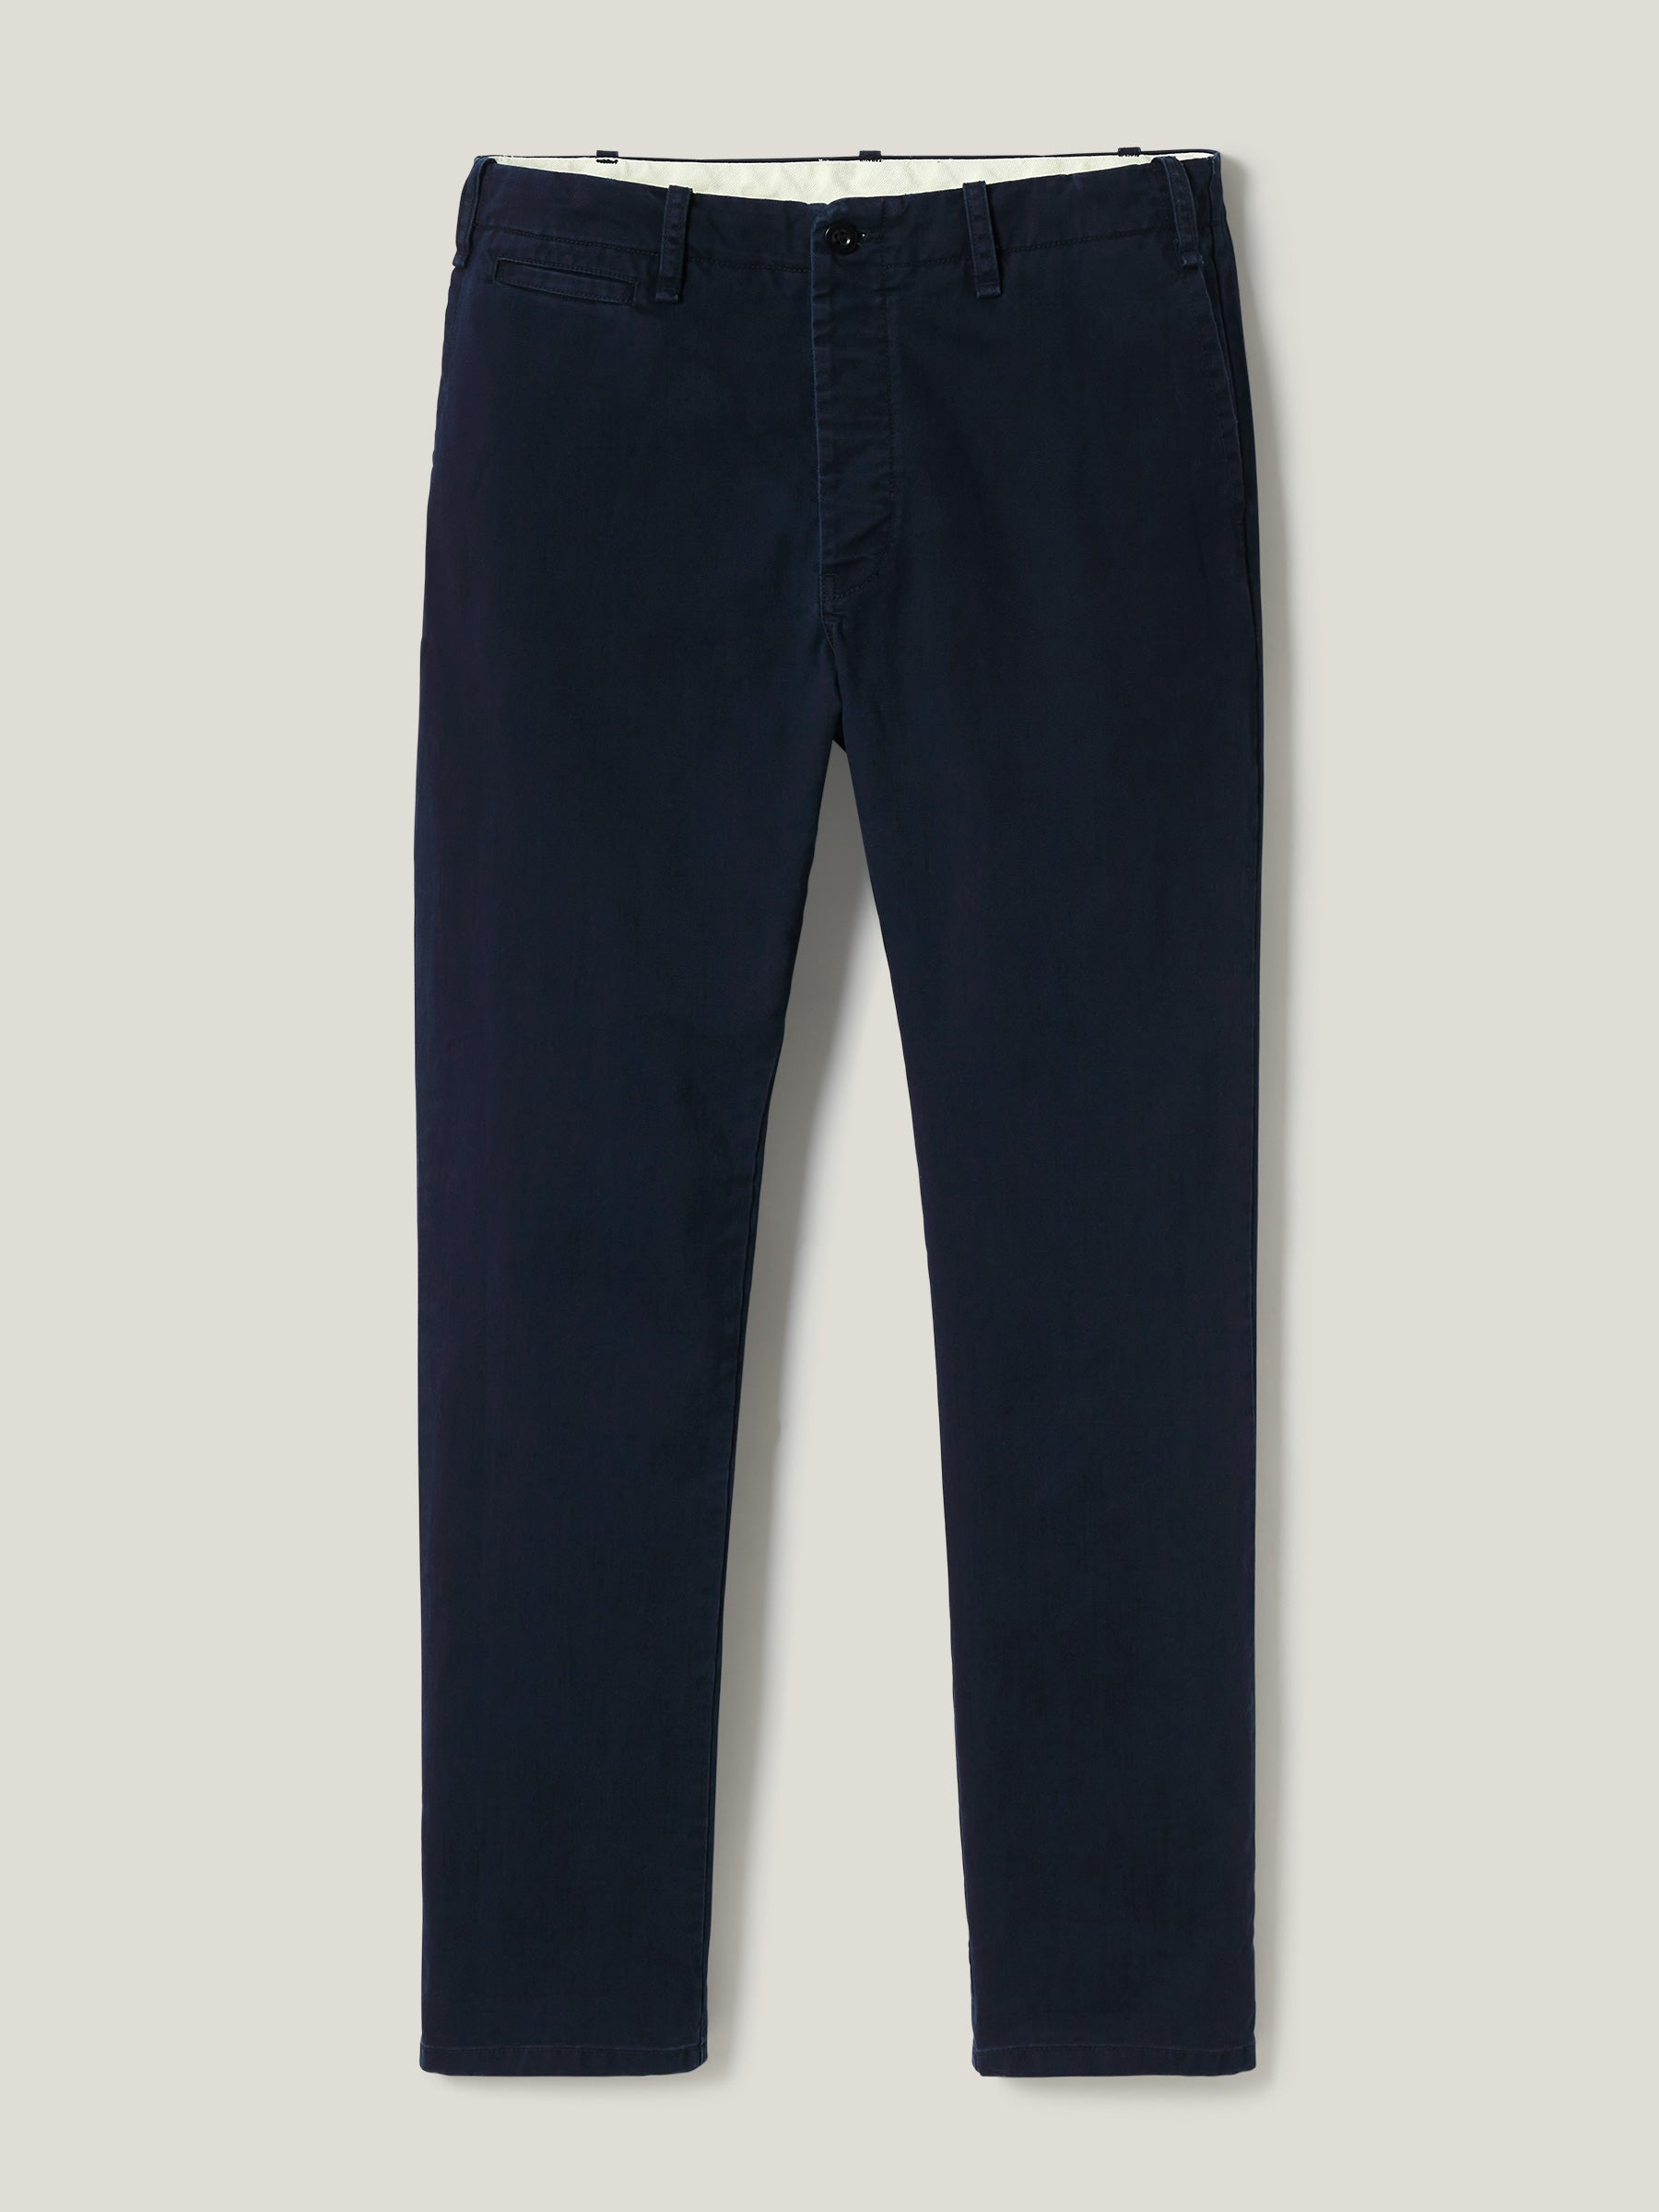 Buck Mason - Dark Navy Slub Twill Officer Pant